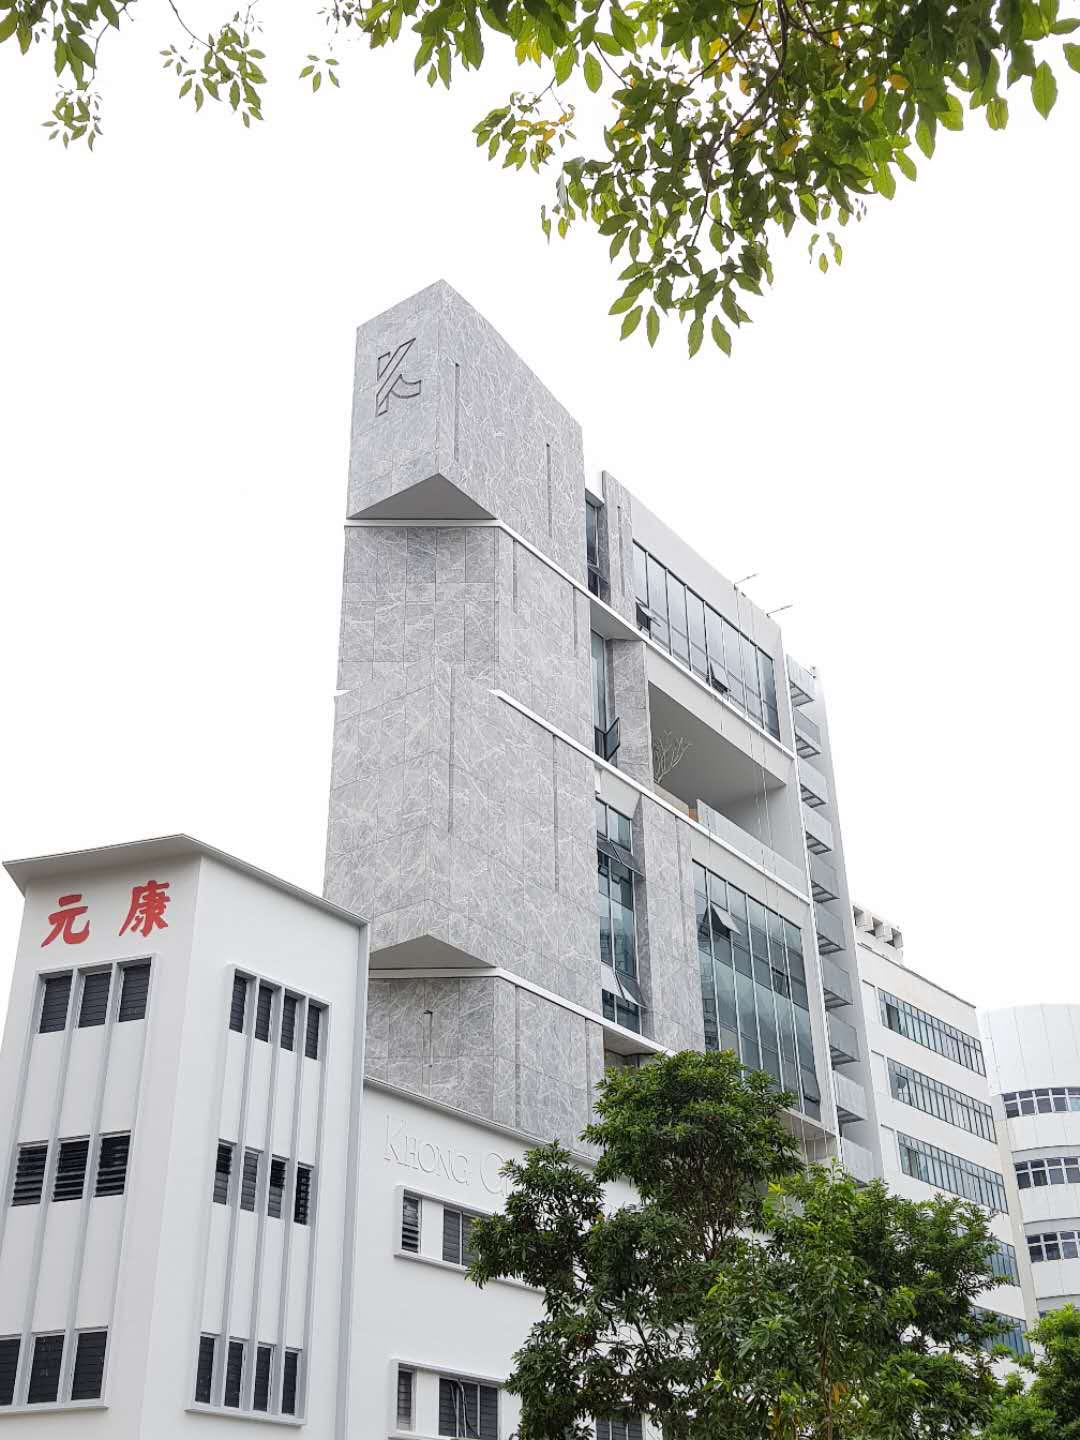 Alternate view of the Khong Guan Office Building in Singapore